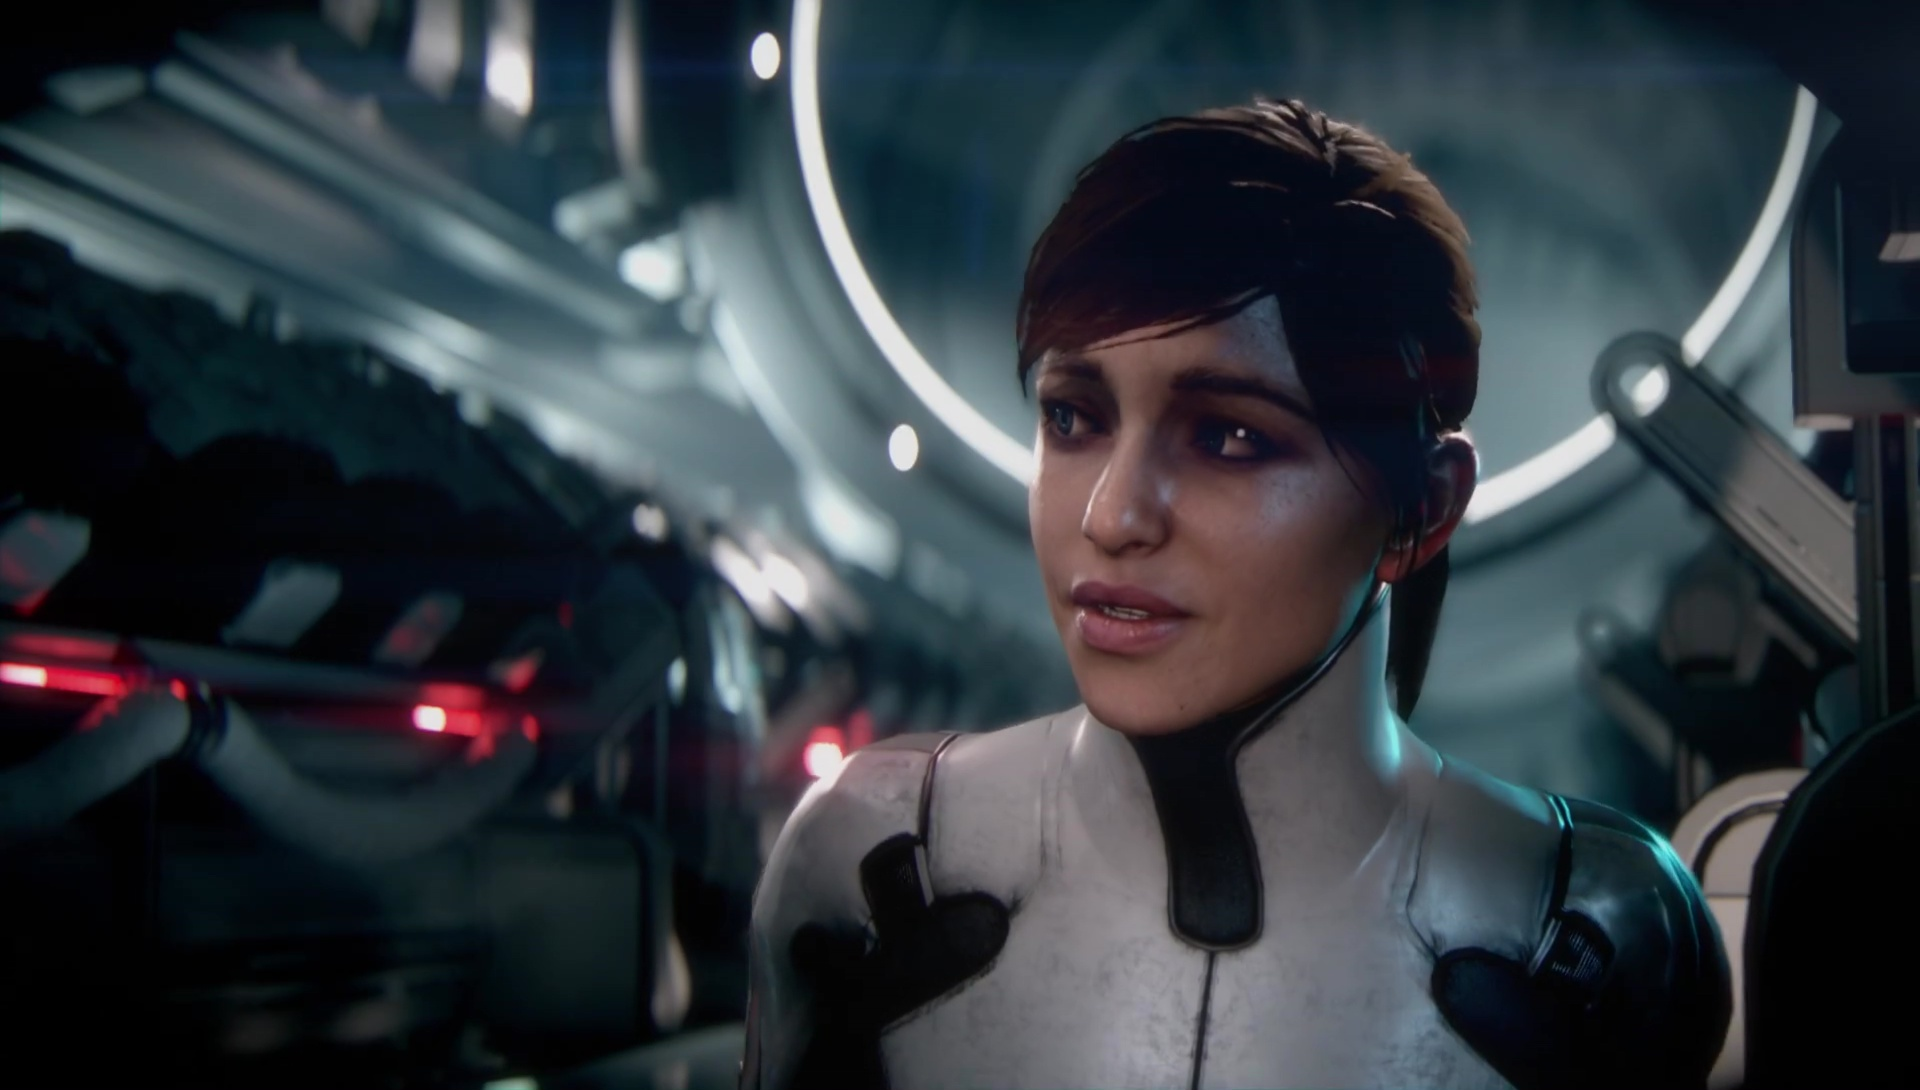 Mass Effect 4 characters - Sara